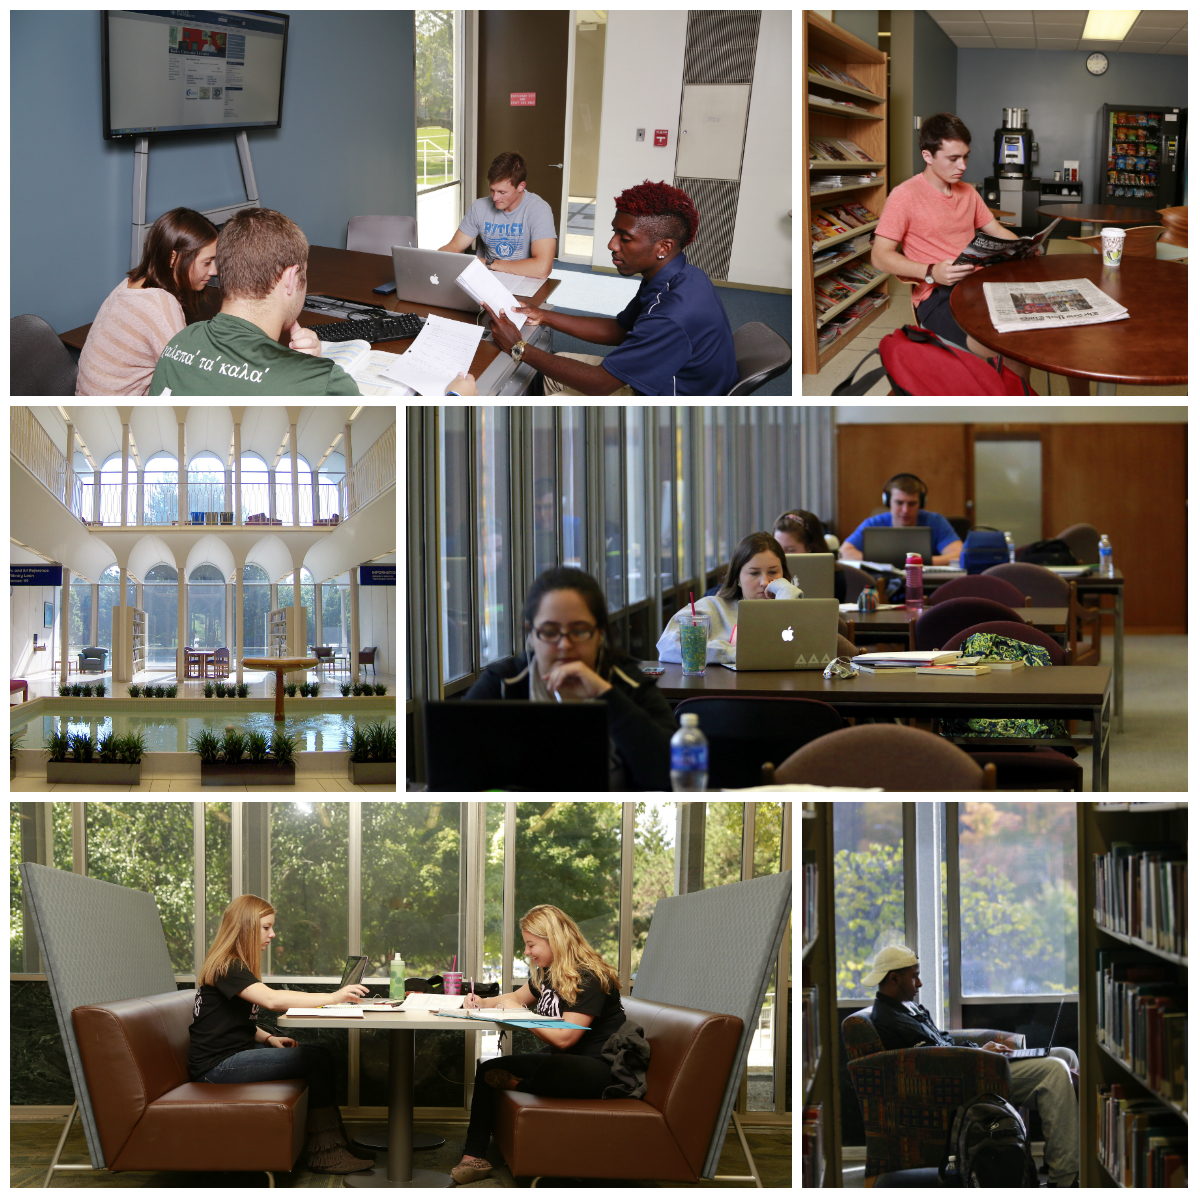 Shots of students studying in groups and individually throughout Irwin Library.